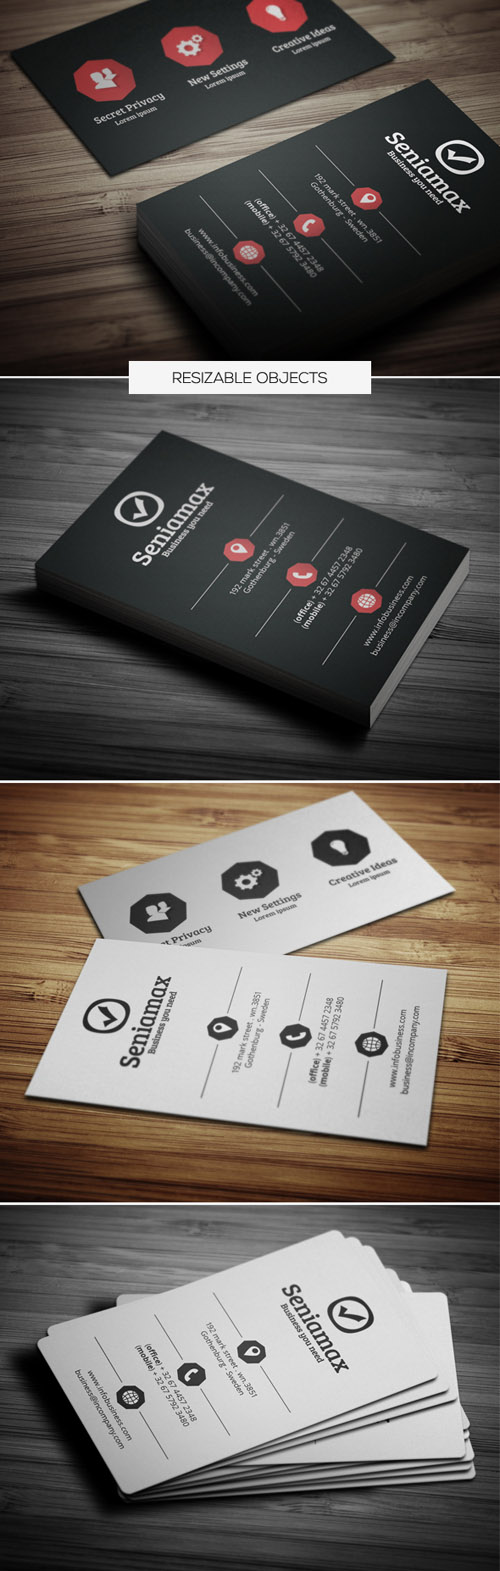 Stylish Business Cards Design-17